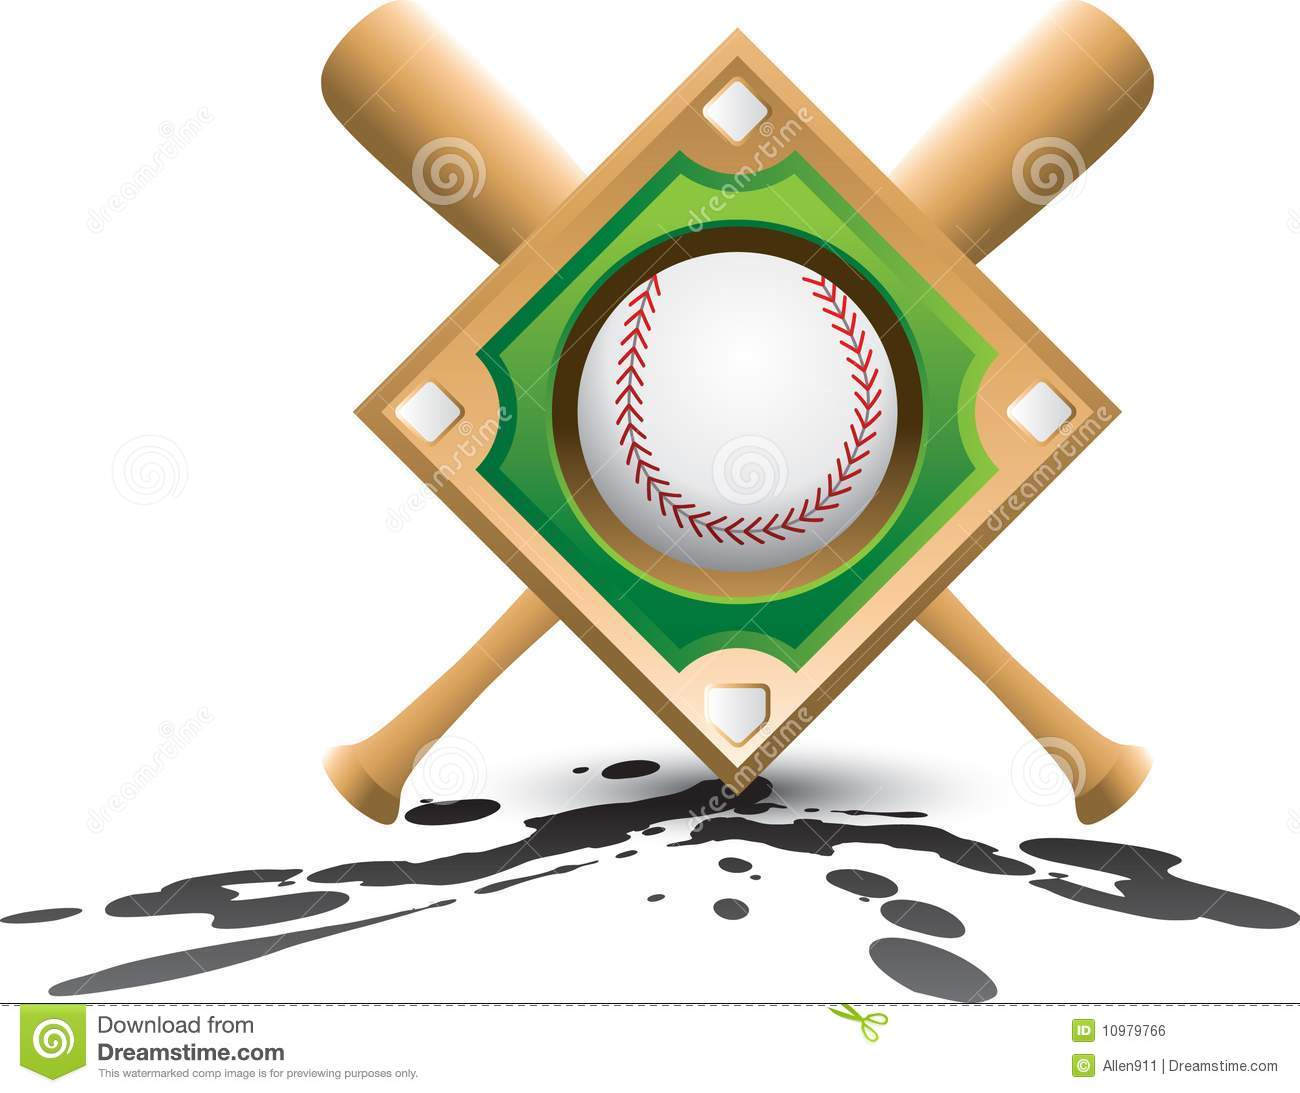 Baseball diamond and crossed baseball bats on splattered ground.